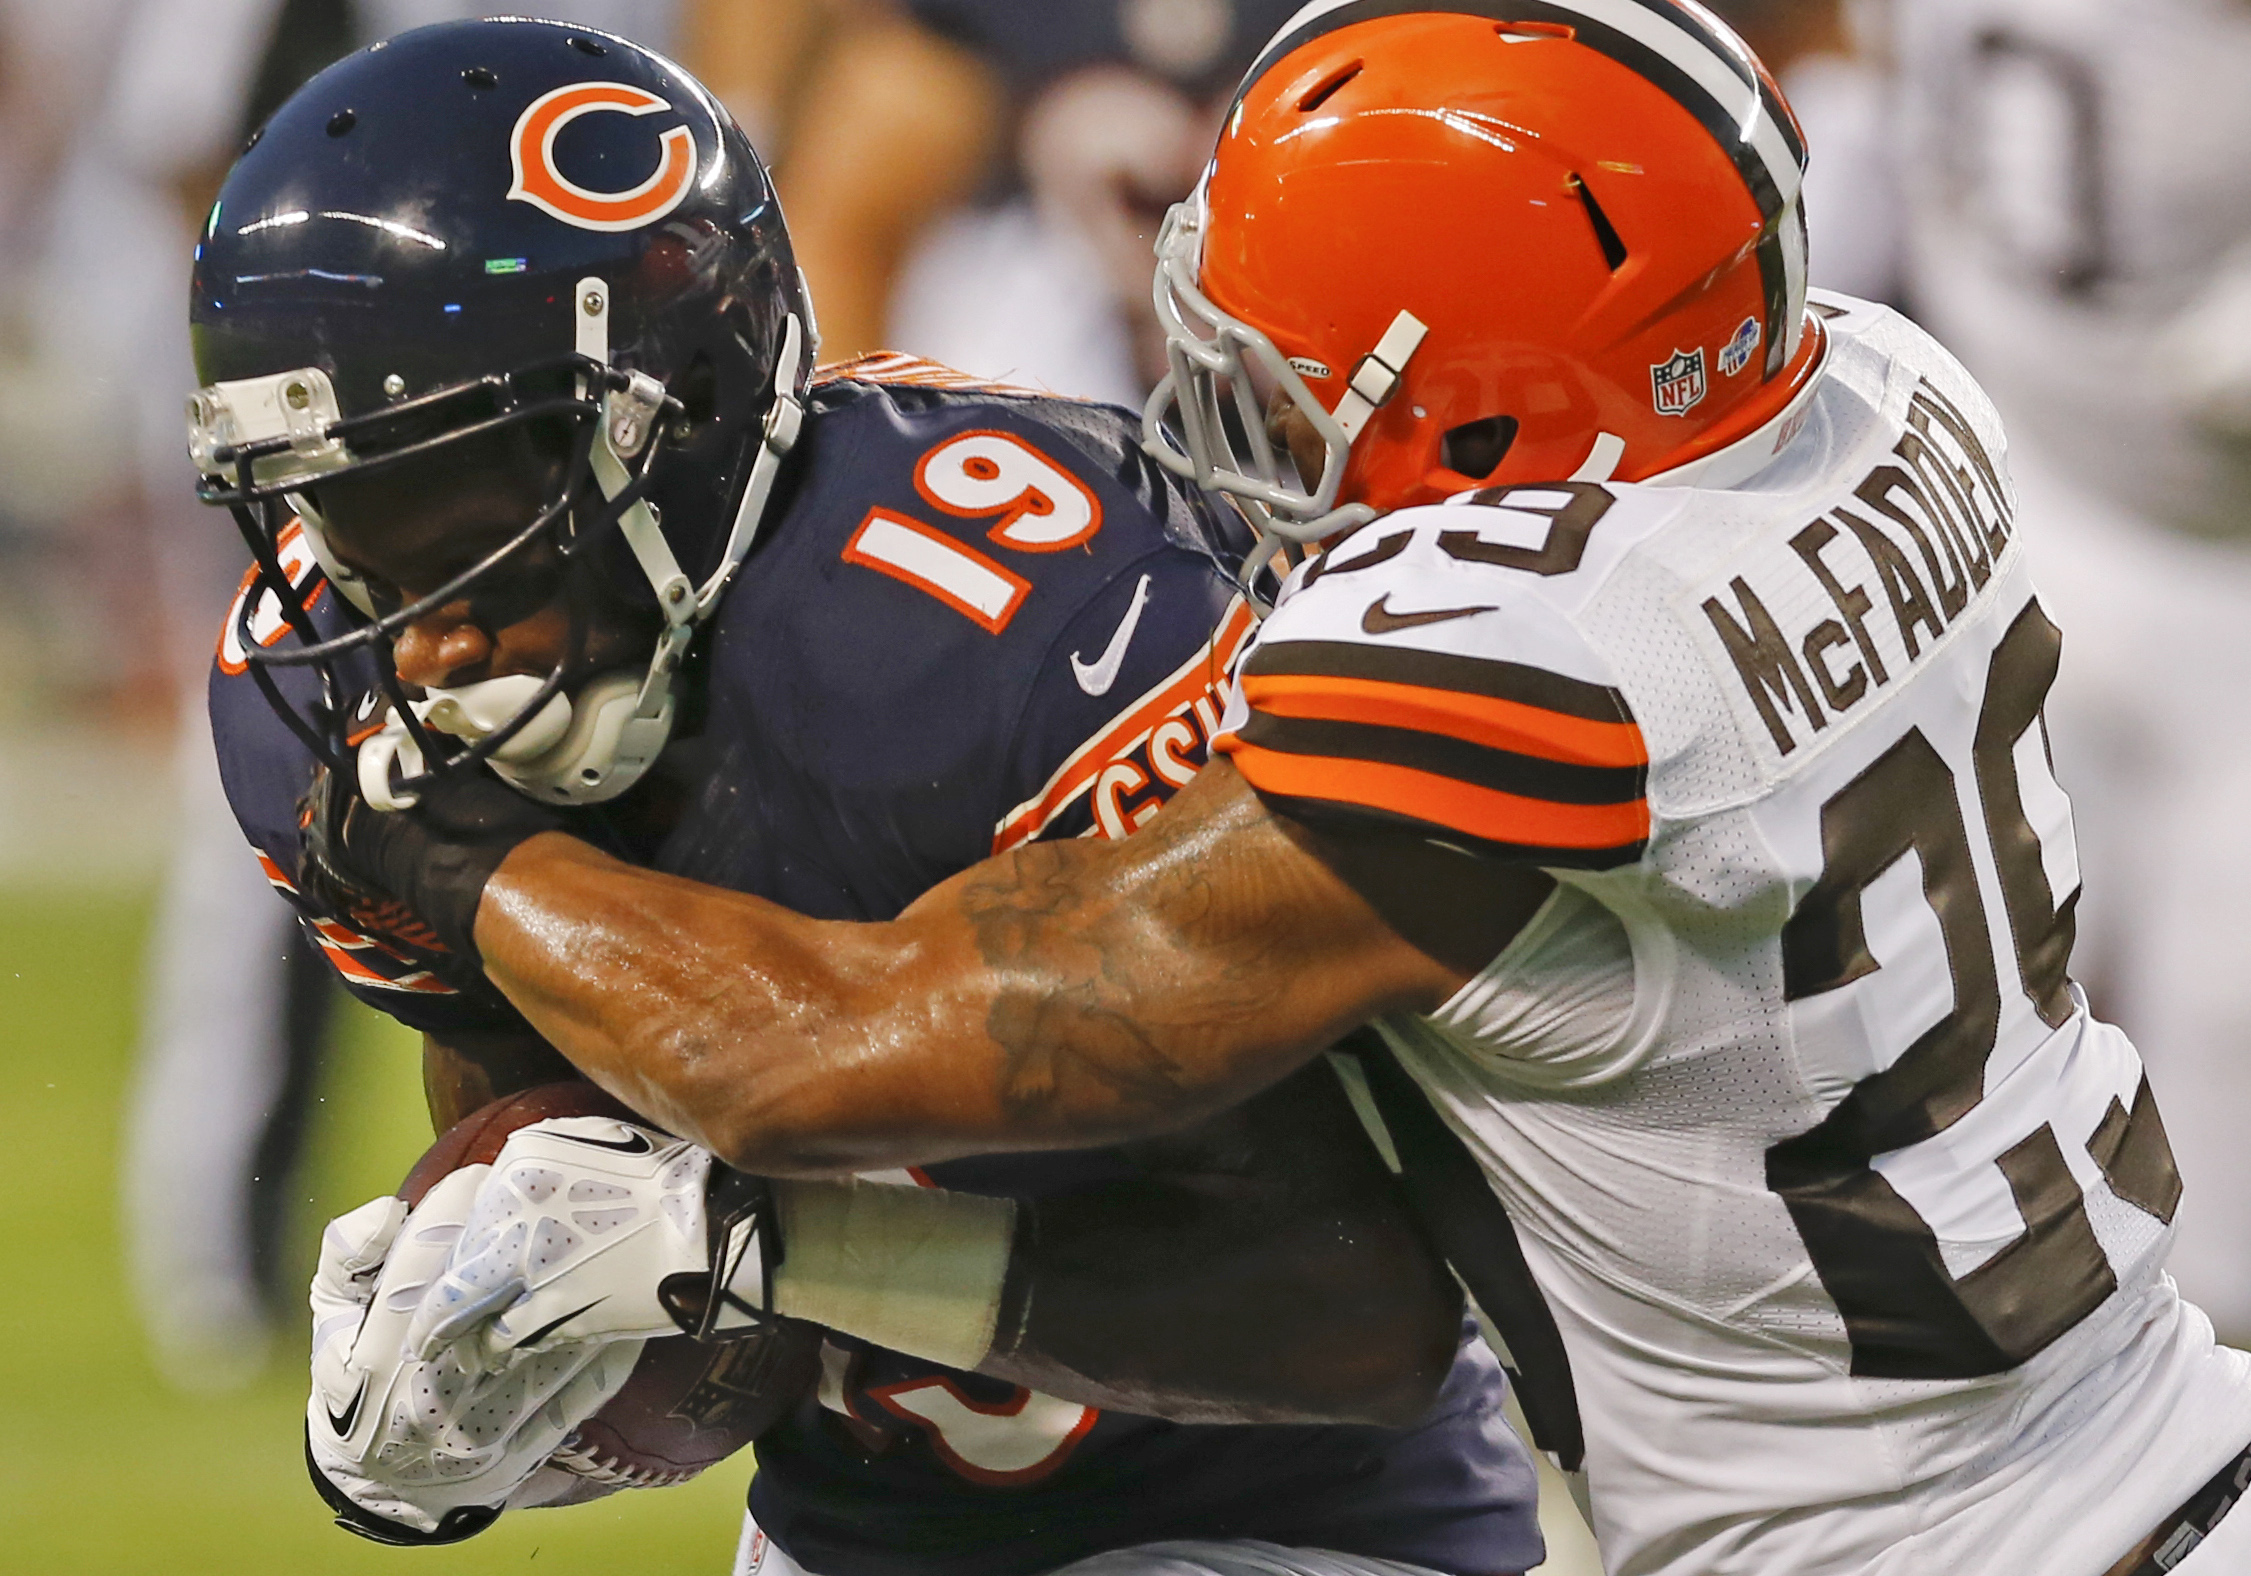 FILE- In this Aug. 29, 2013, file photo, Chicago Bears wide receiver Joe Anderson (19) is tackled by Cleveland Browns cornerback Leon McFadden (29) during the first half of a preseason NFL football game in Chicago. Anderson was signed to the New York Jets